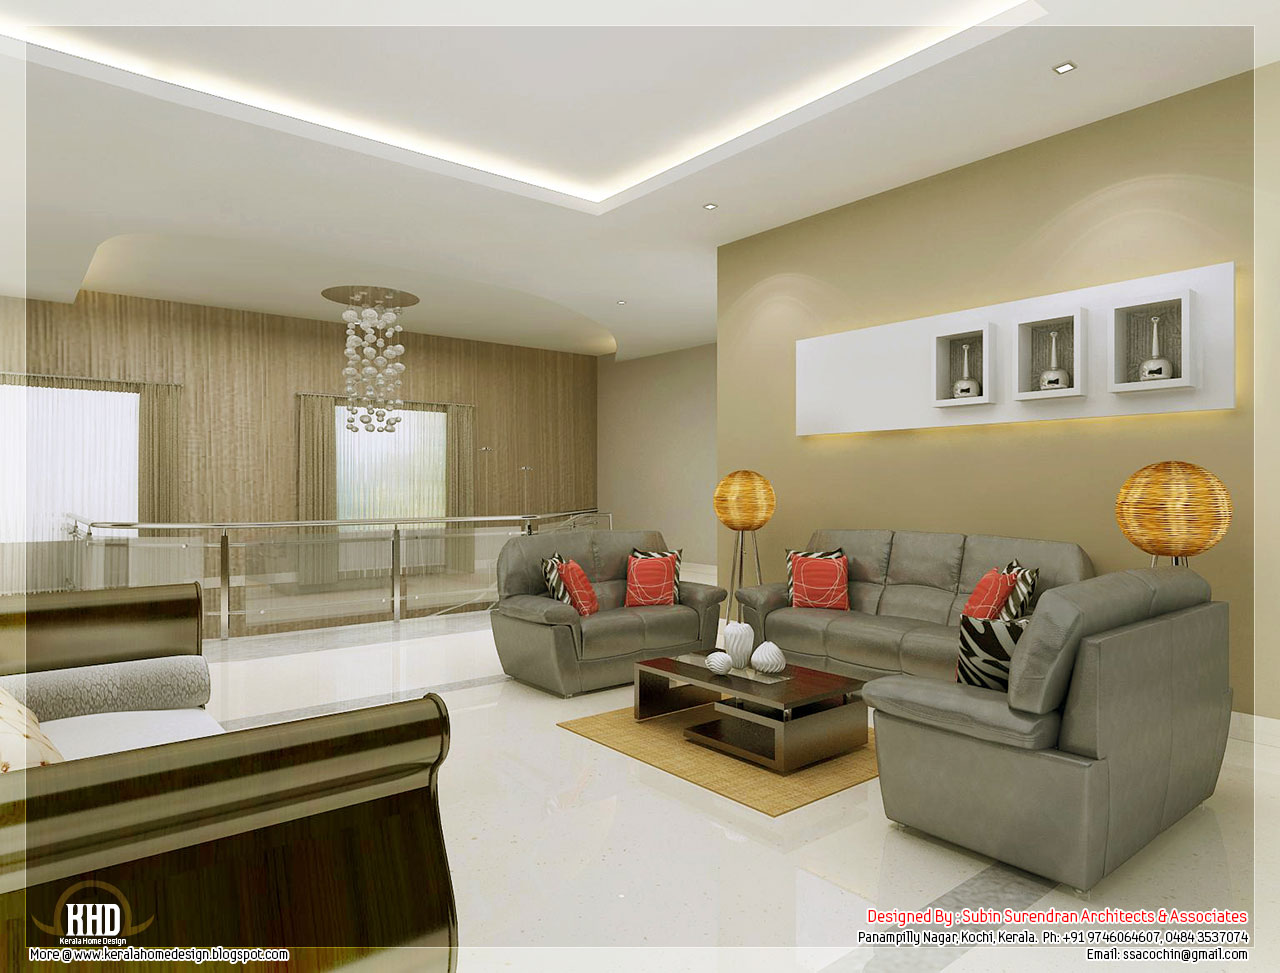 Awesome 3d interior renderings kerala home design and floor plans Home design ideas for bedrooms